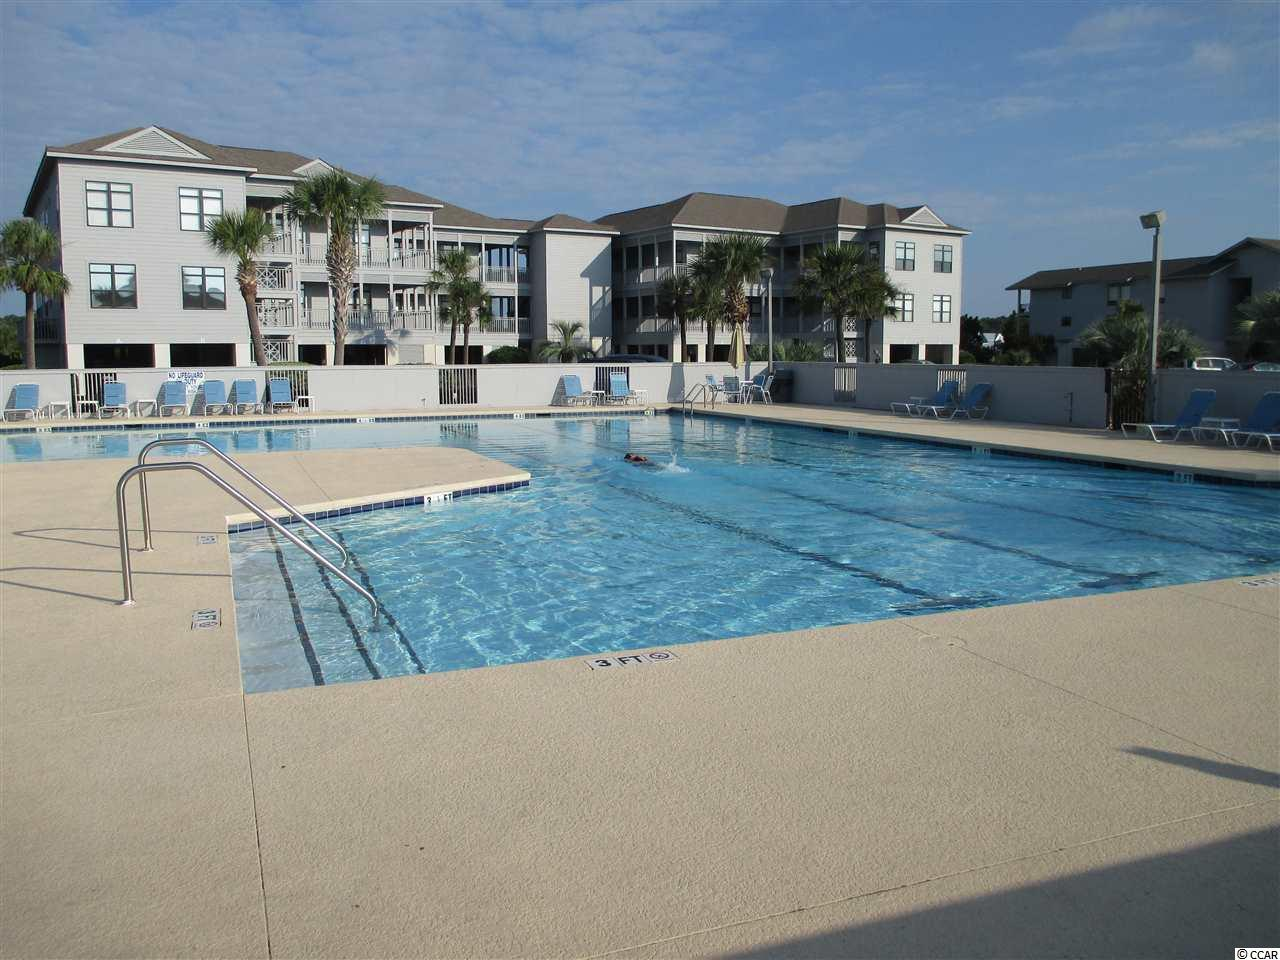 Another property at   Inlet Point Villas - Litchfield offered by Pawleys Island real estate agent